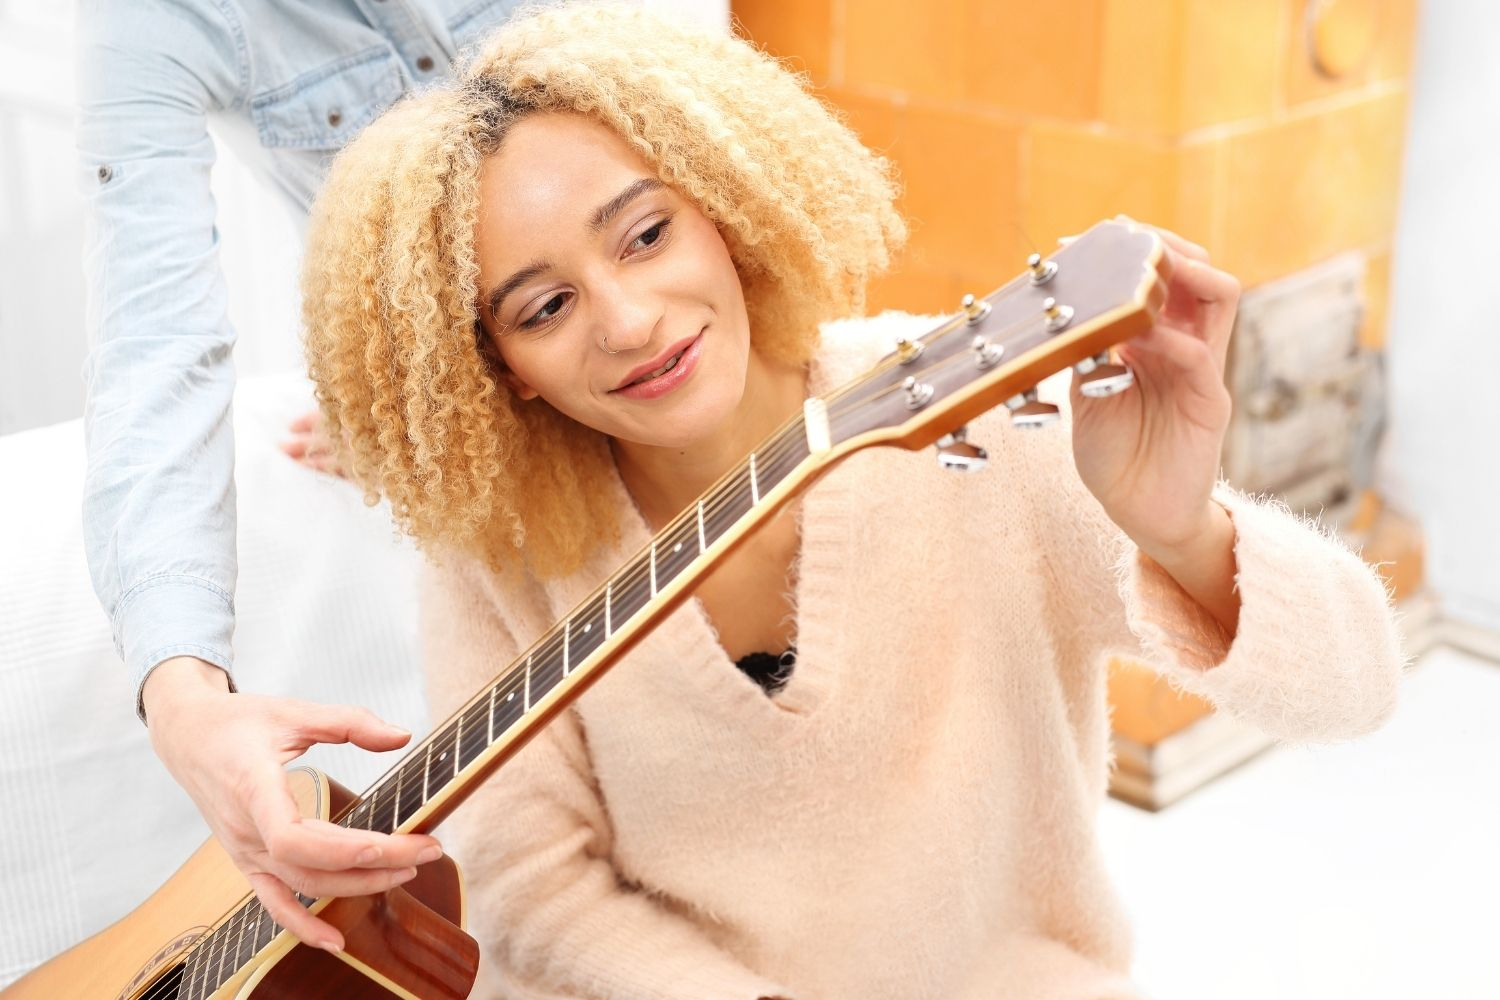 Learn guitar from the ground up. Prevent bad habits and get fast results. Made for beginners, taught by experts.